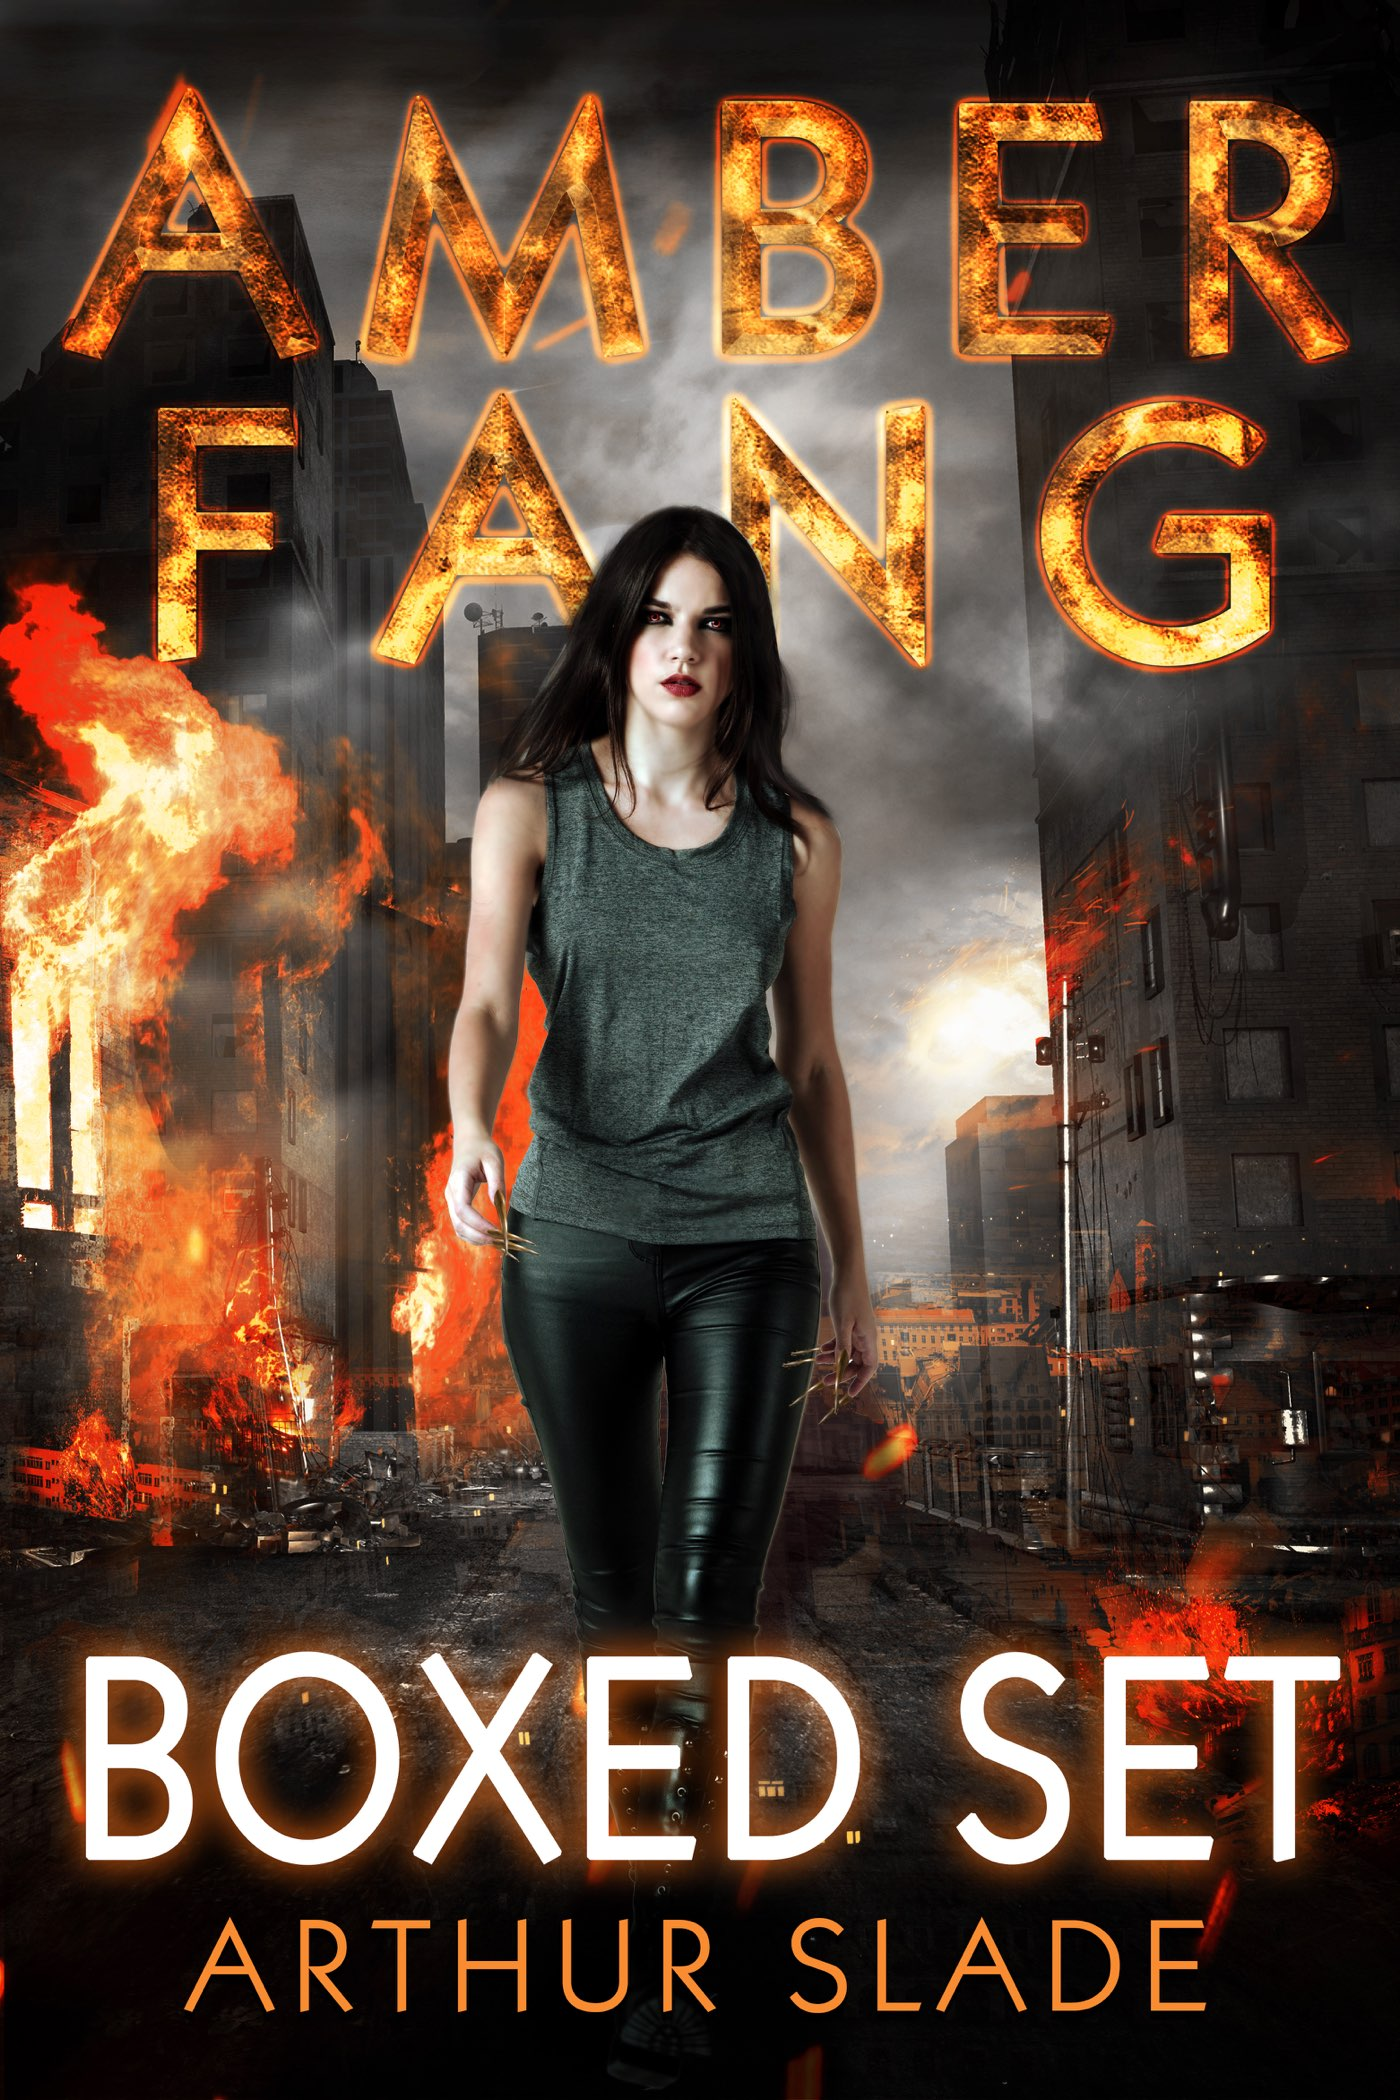 Amber-Fang-Boxed-Set-Generic.jpg